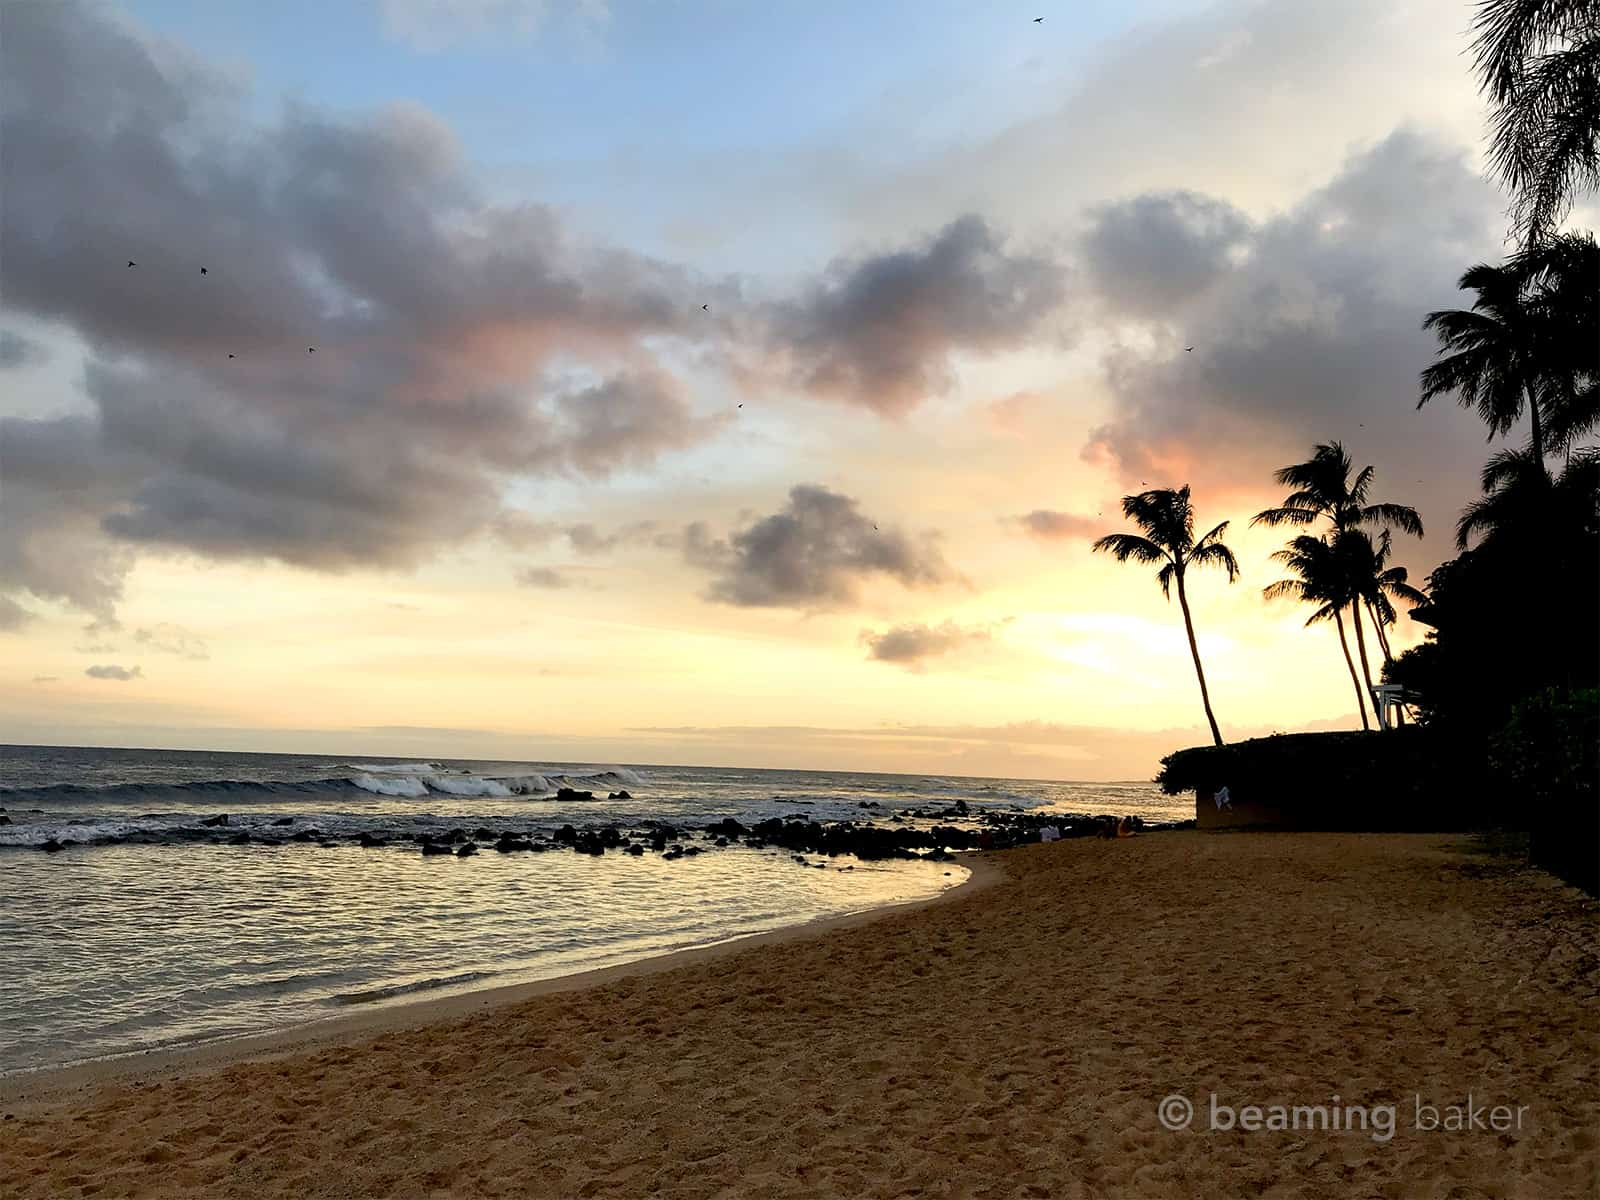 Seven of the most amazingly fun and memorable activities to do when staying in the South Shore of Kauai, Hawaii. #Travel #TravelTips #Hawaii #BucketLists | Post on BeamingBaker.com